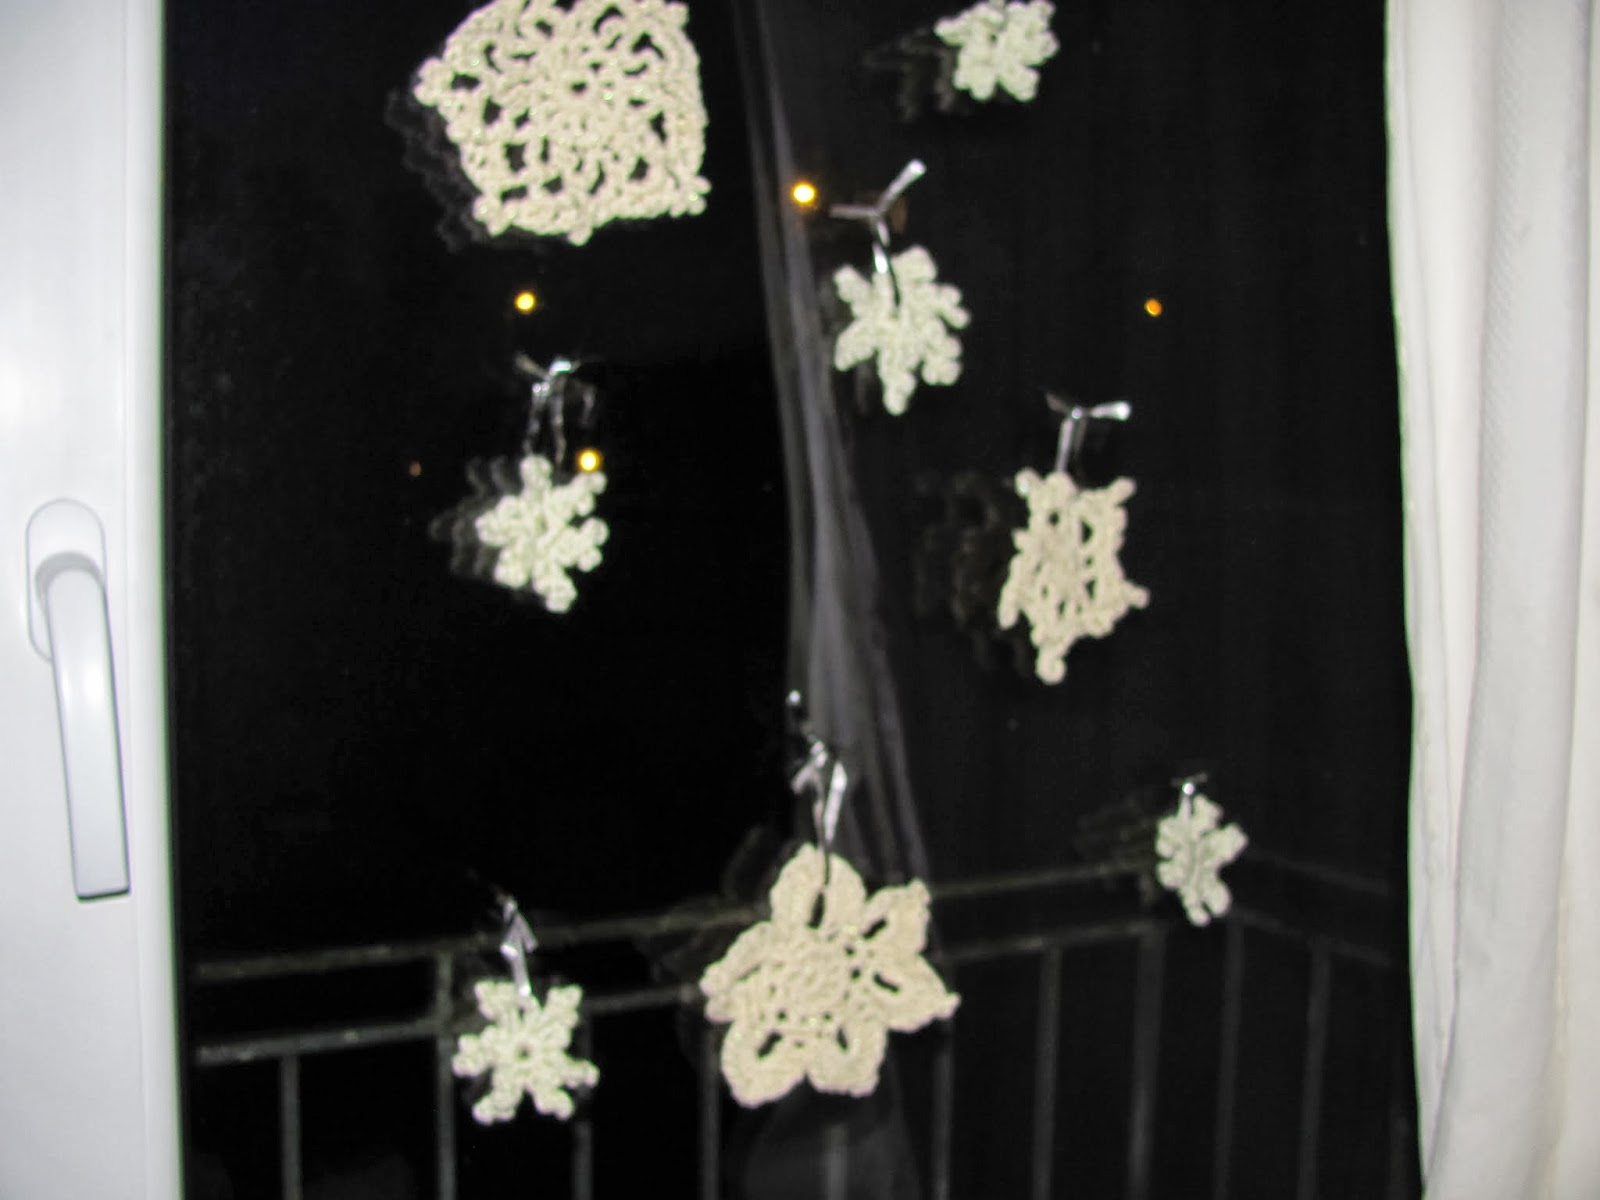 Snowflake decorations hanging in the window